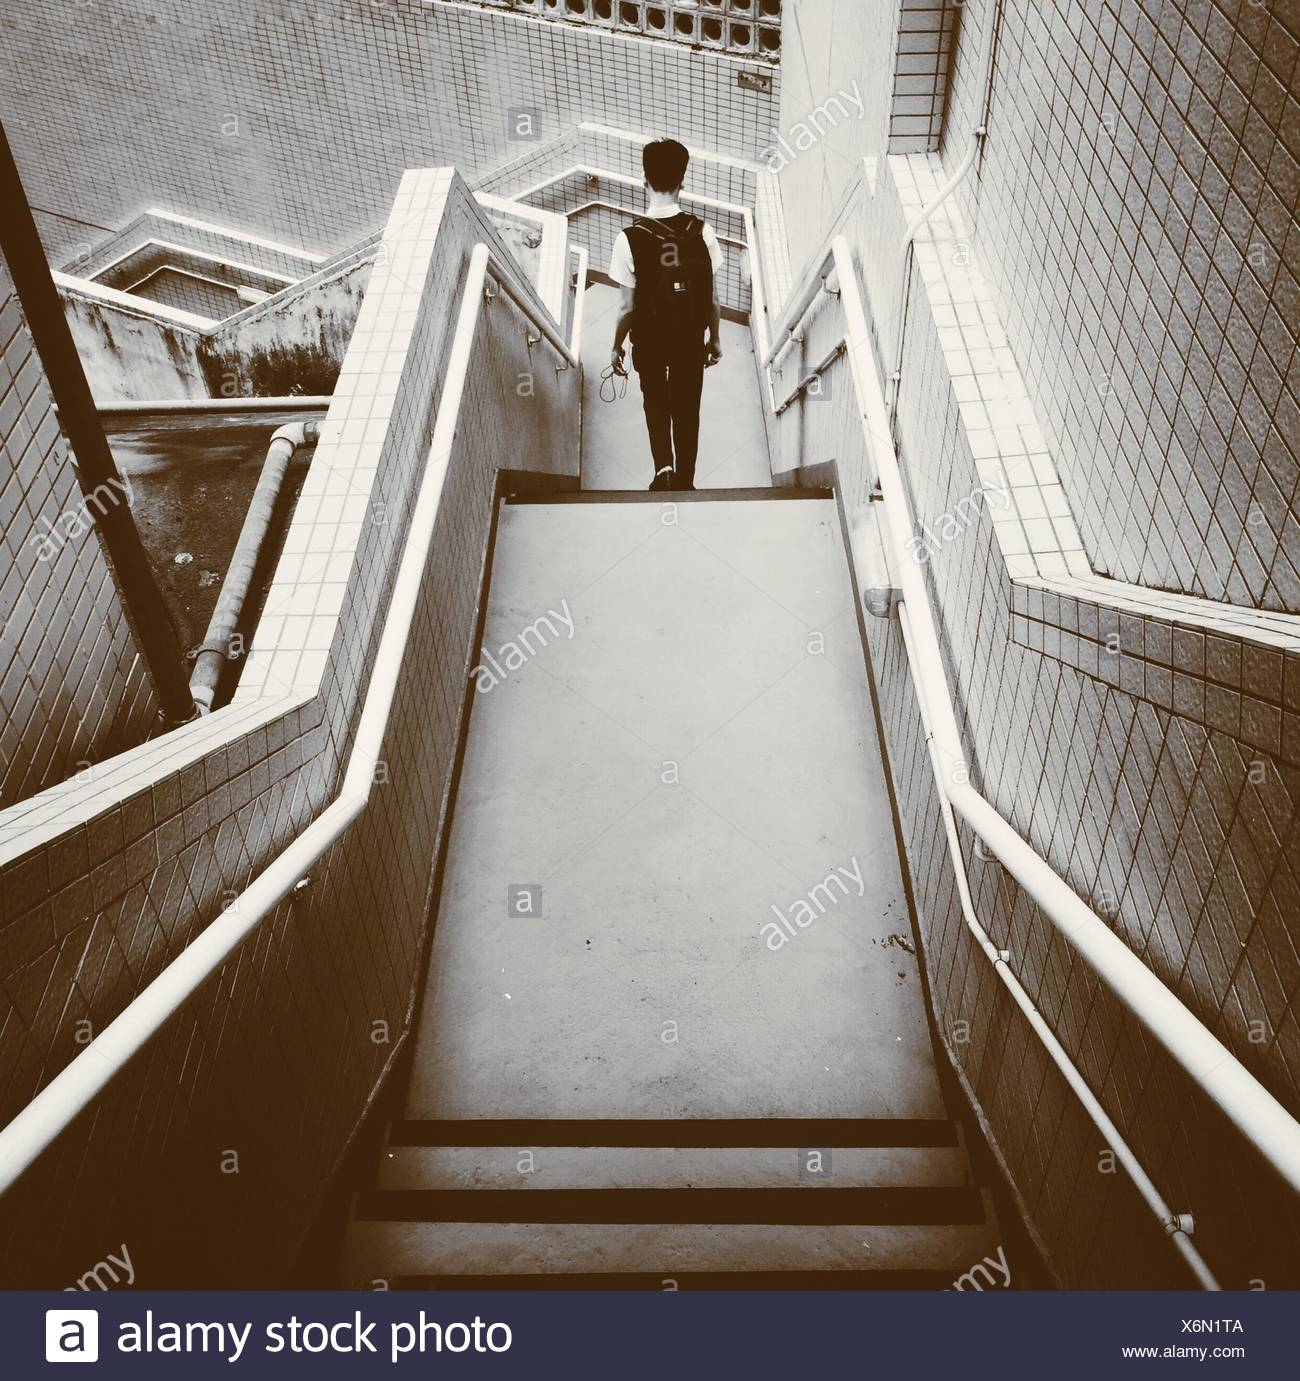 how to walk down stairs with a cane